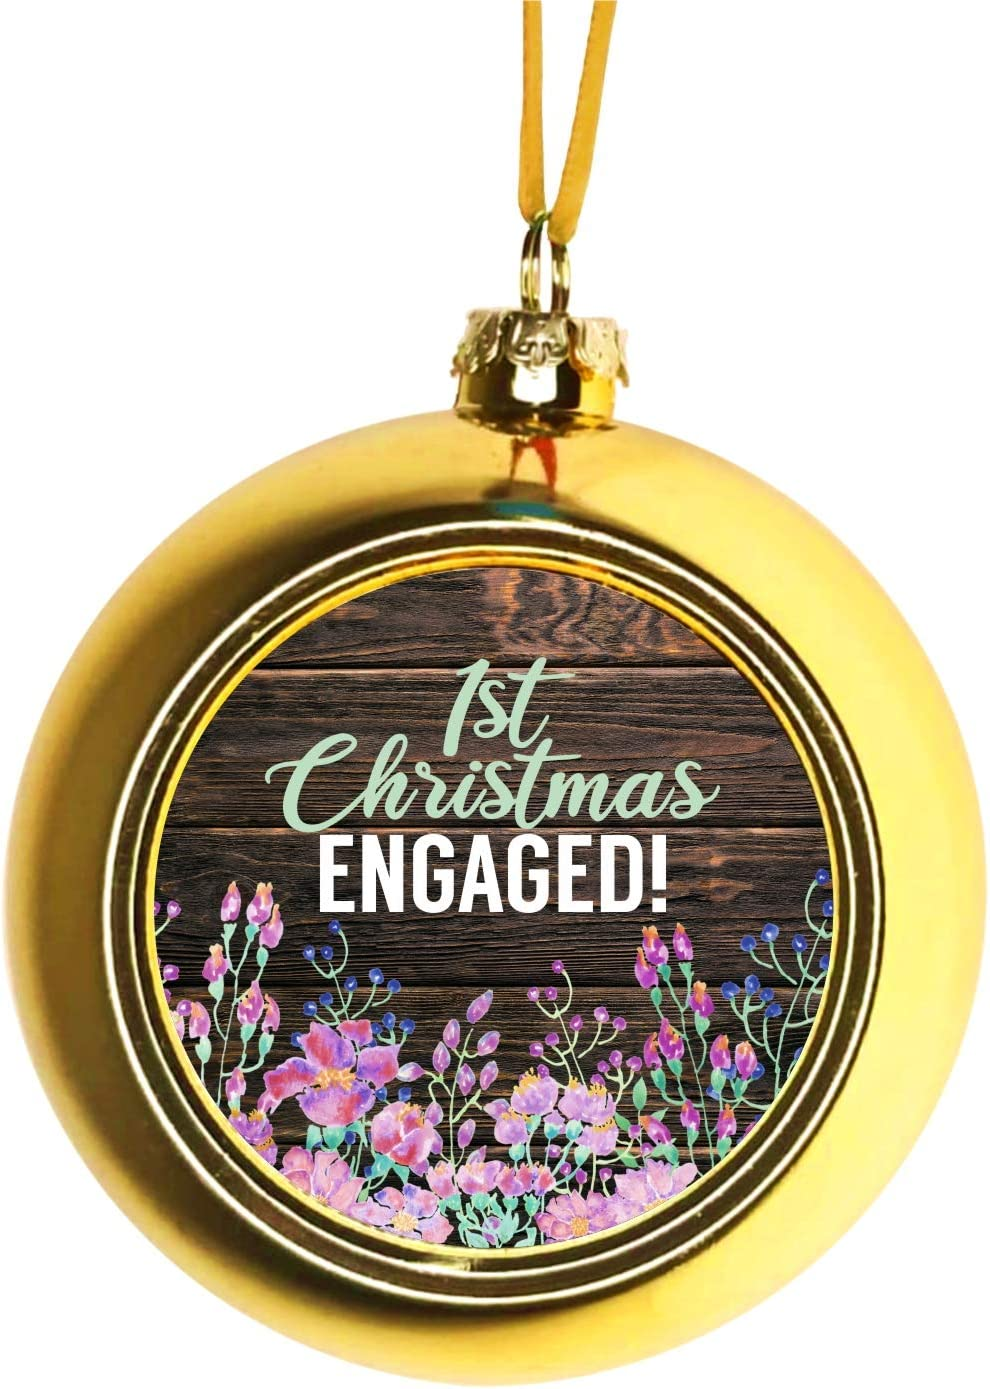 Lea Elliot Max 46% OFF Inc. Manufacturer direct delivery Engagement Christmas Tree Ornaments - Eng We are